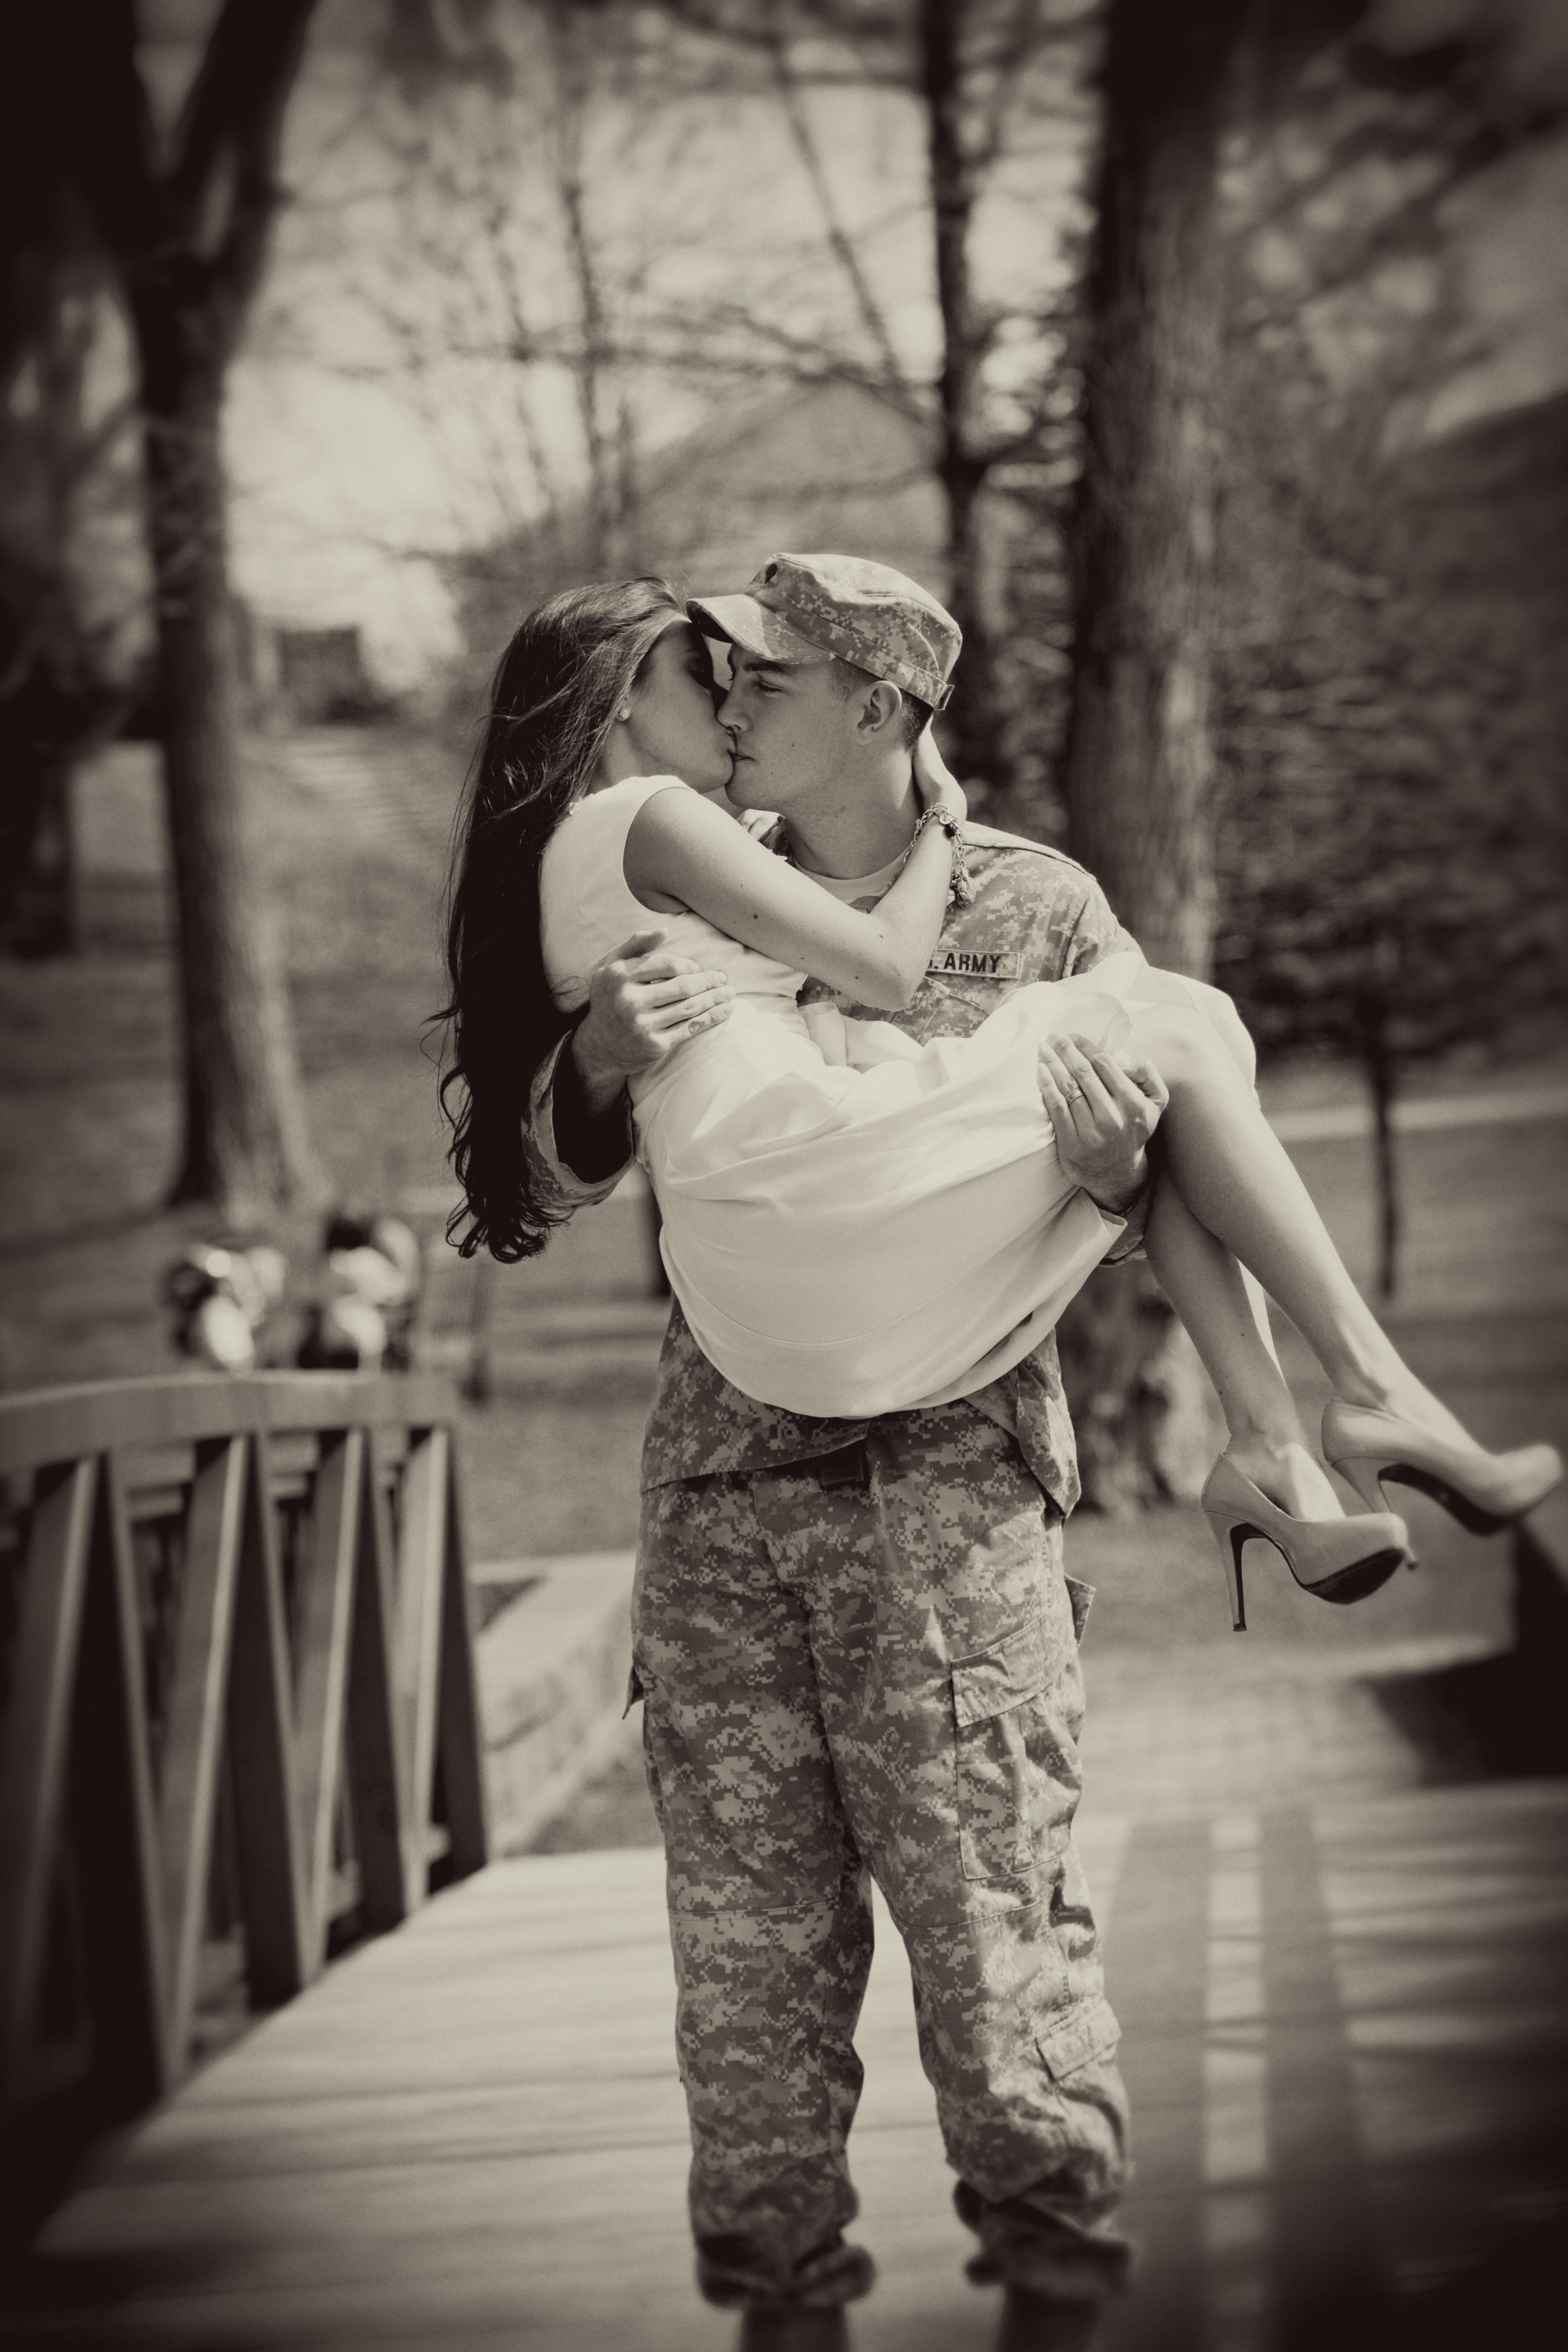 American soldier dating site